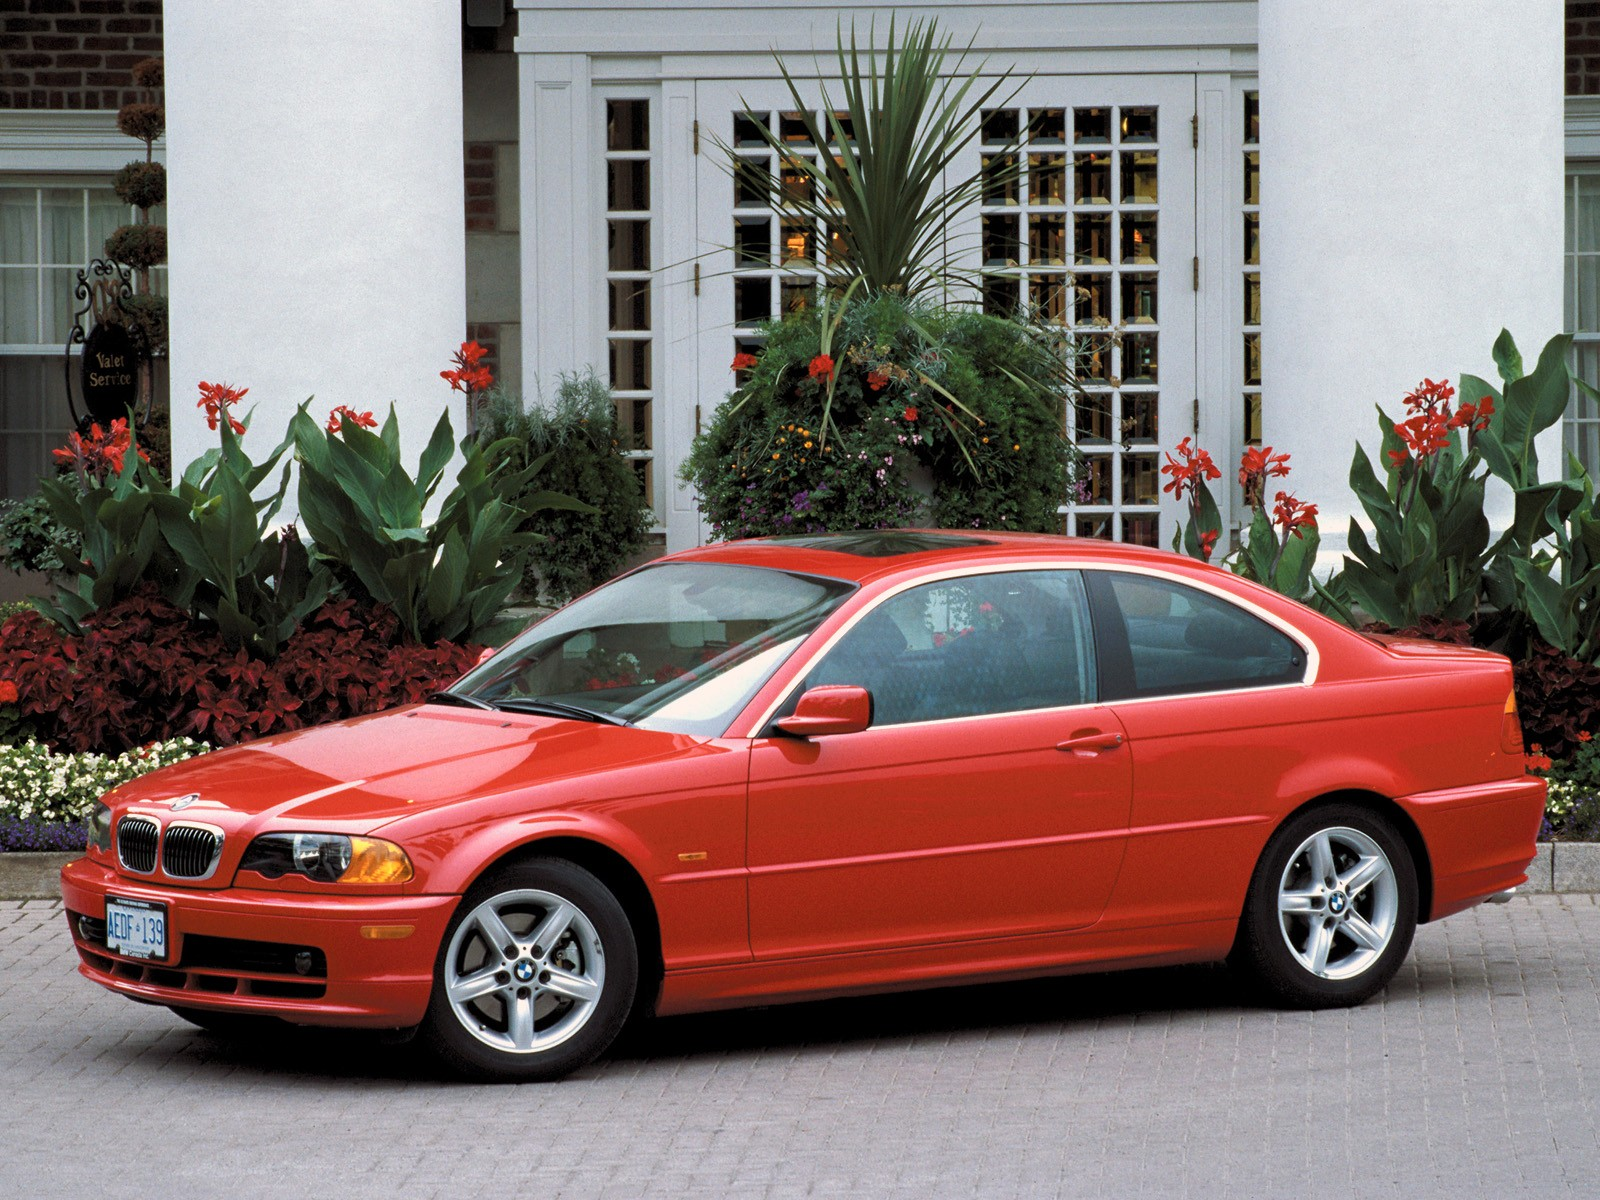 Bmw 3 Series Coupe E46 Specs 1999 2000 2001 2002